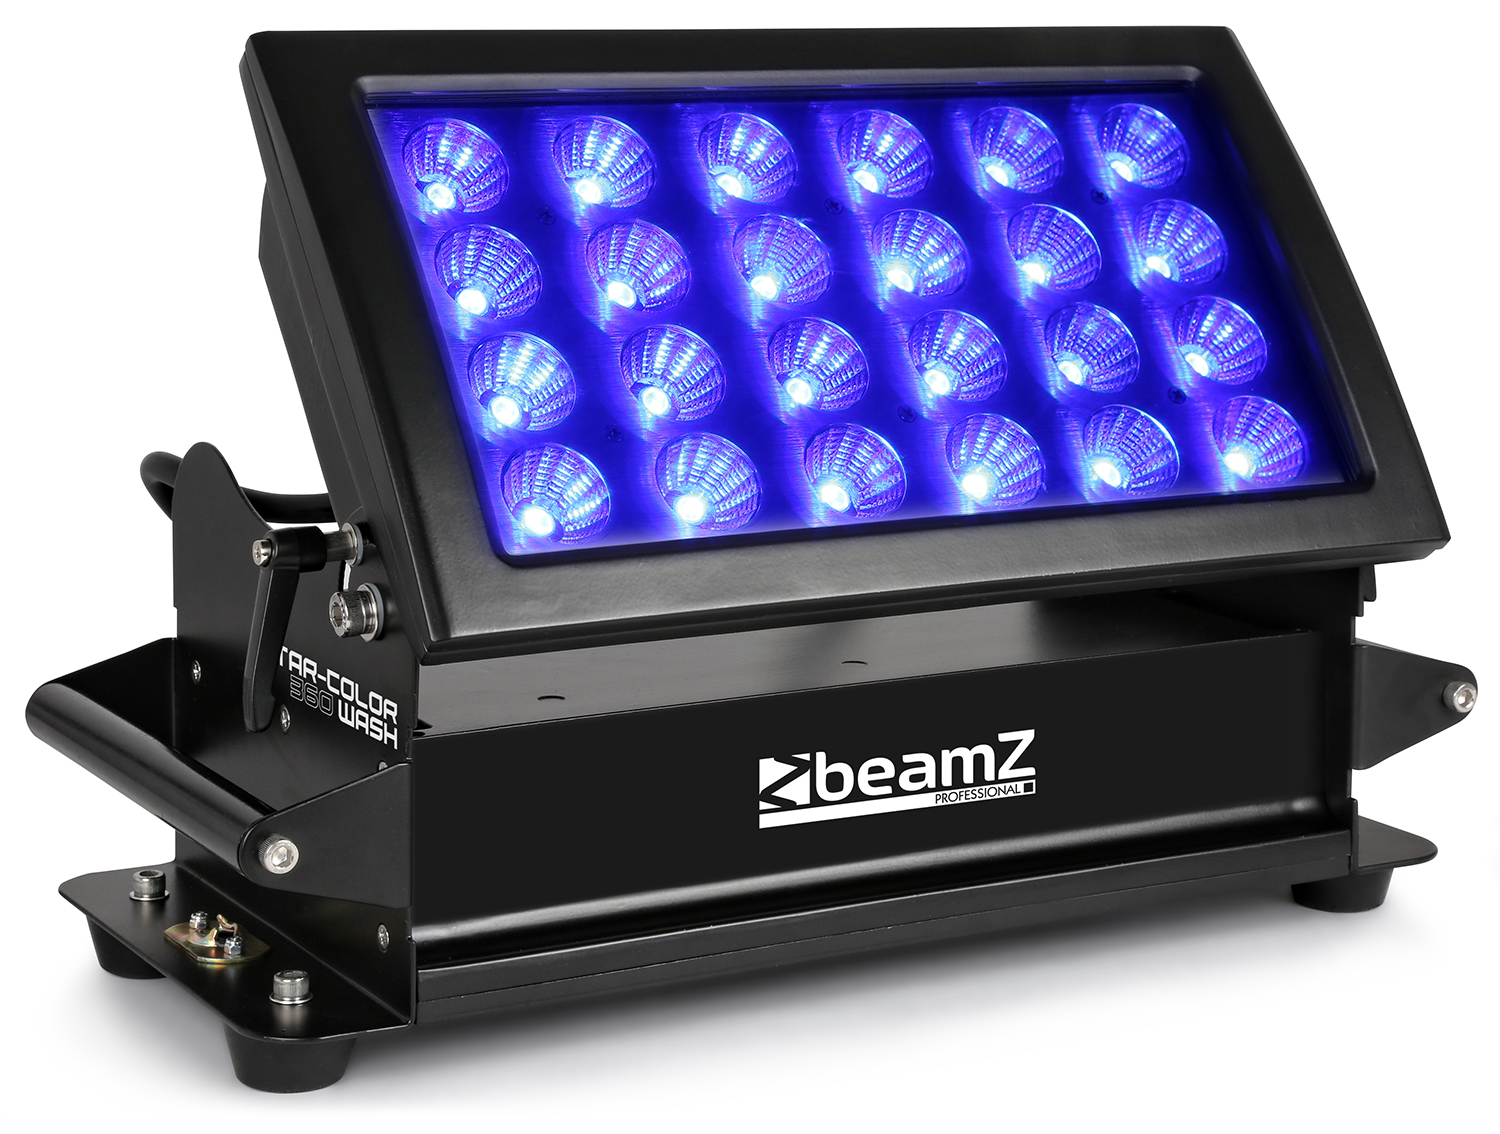 BeamZ Professional Star-Color 360 Wash Light, 24x15W HCL LED, DMX,